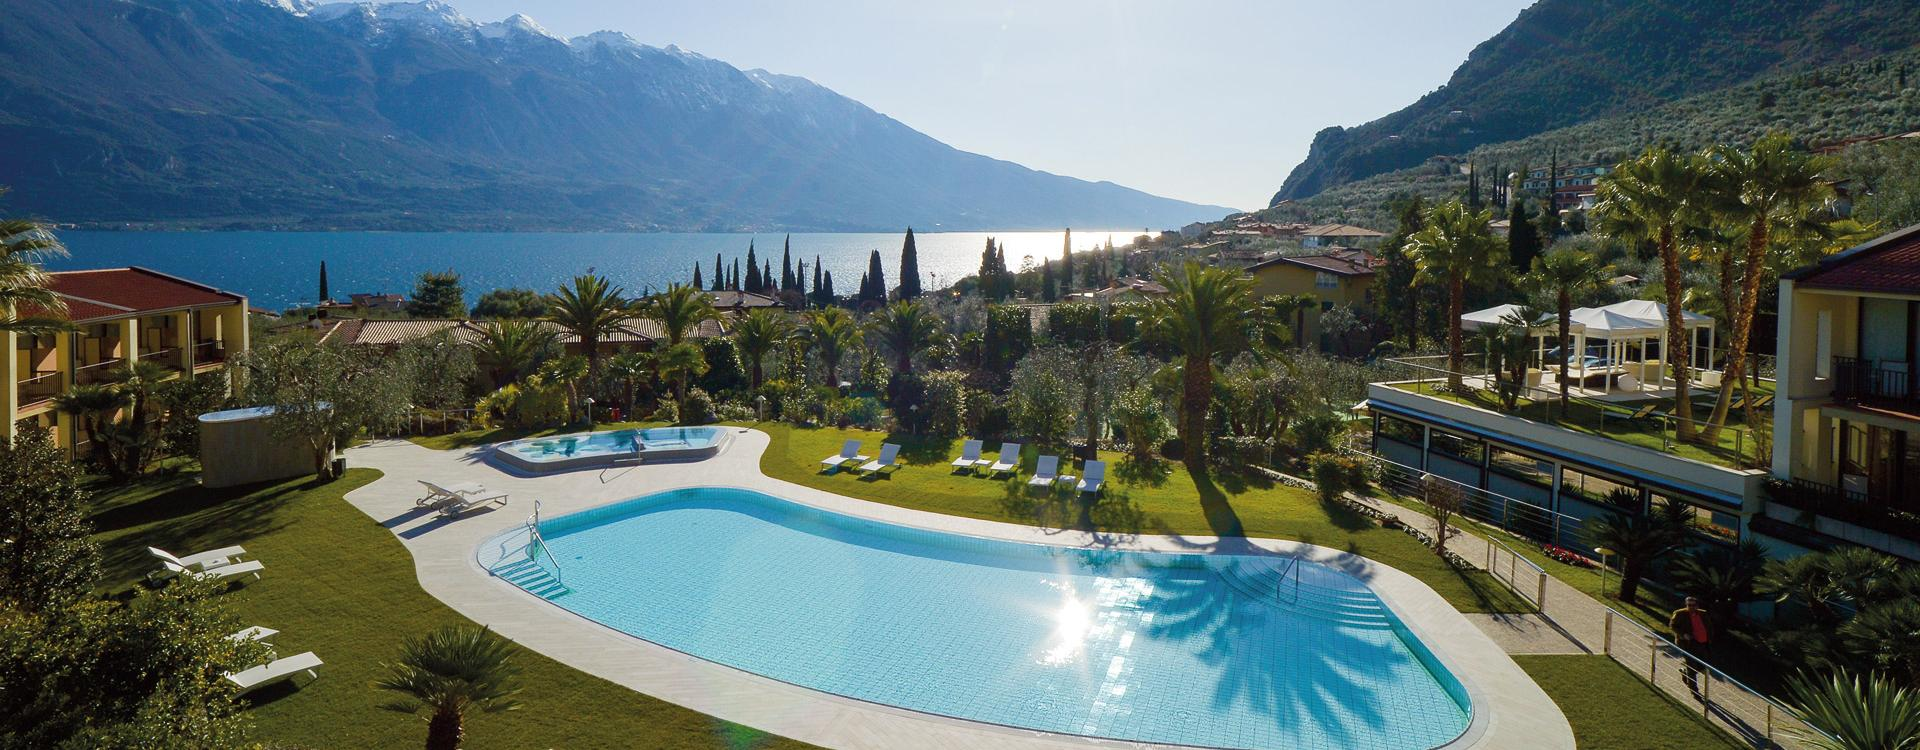 Appiani Tiles Pool Spa Park Hotel Imperial Limone Sul Garda Italy